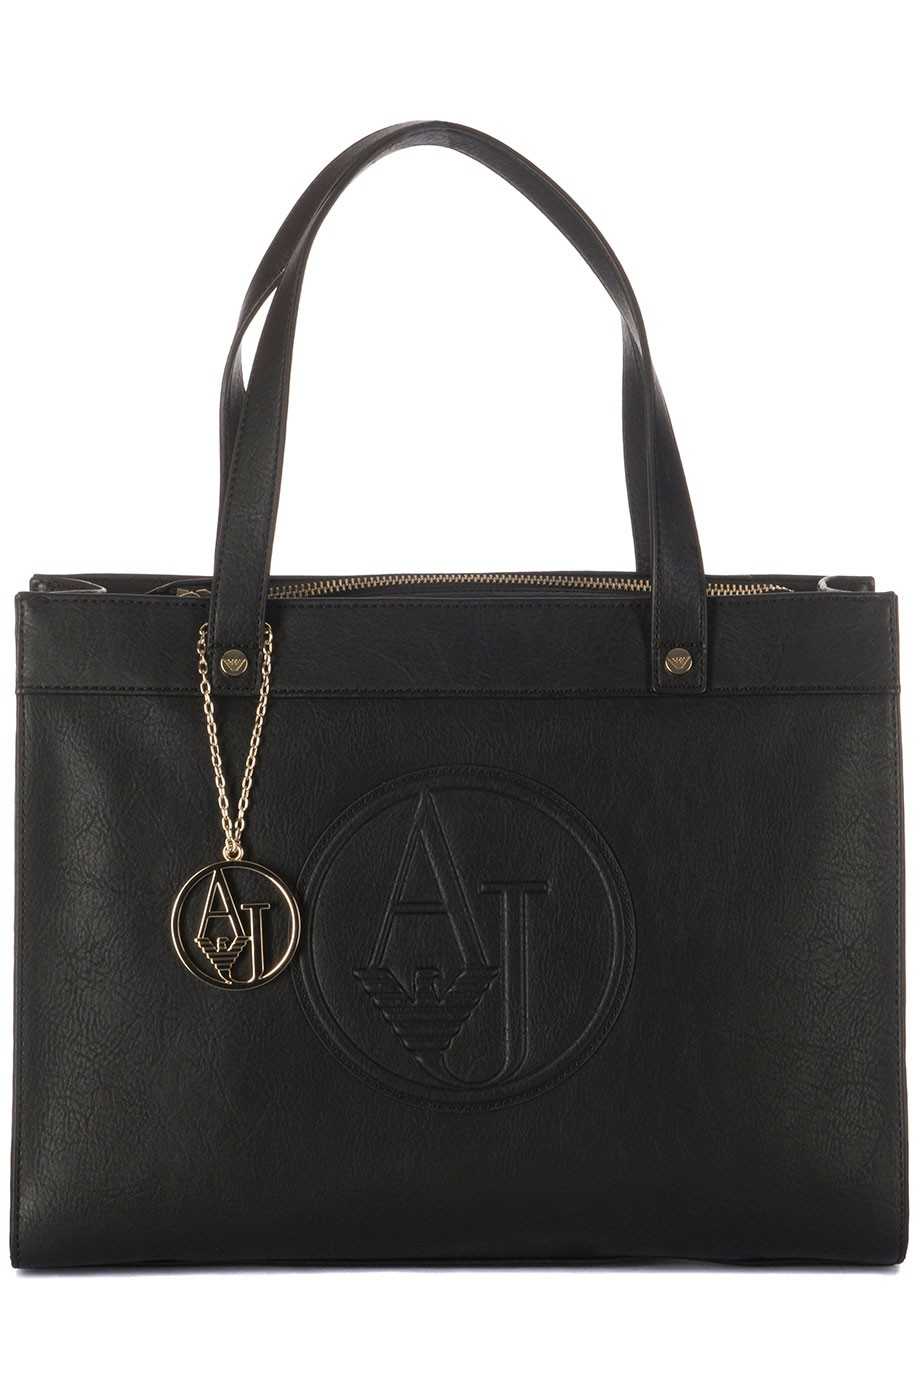 Armani Jeans Women Shopping Black Bag